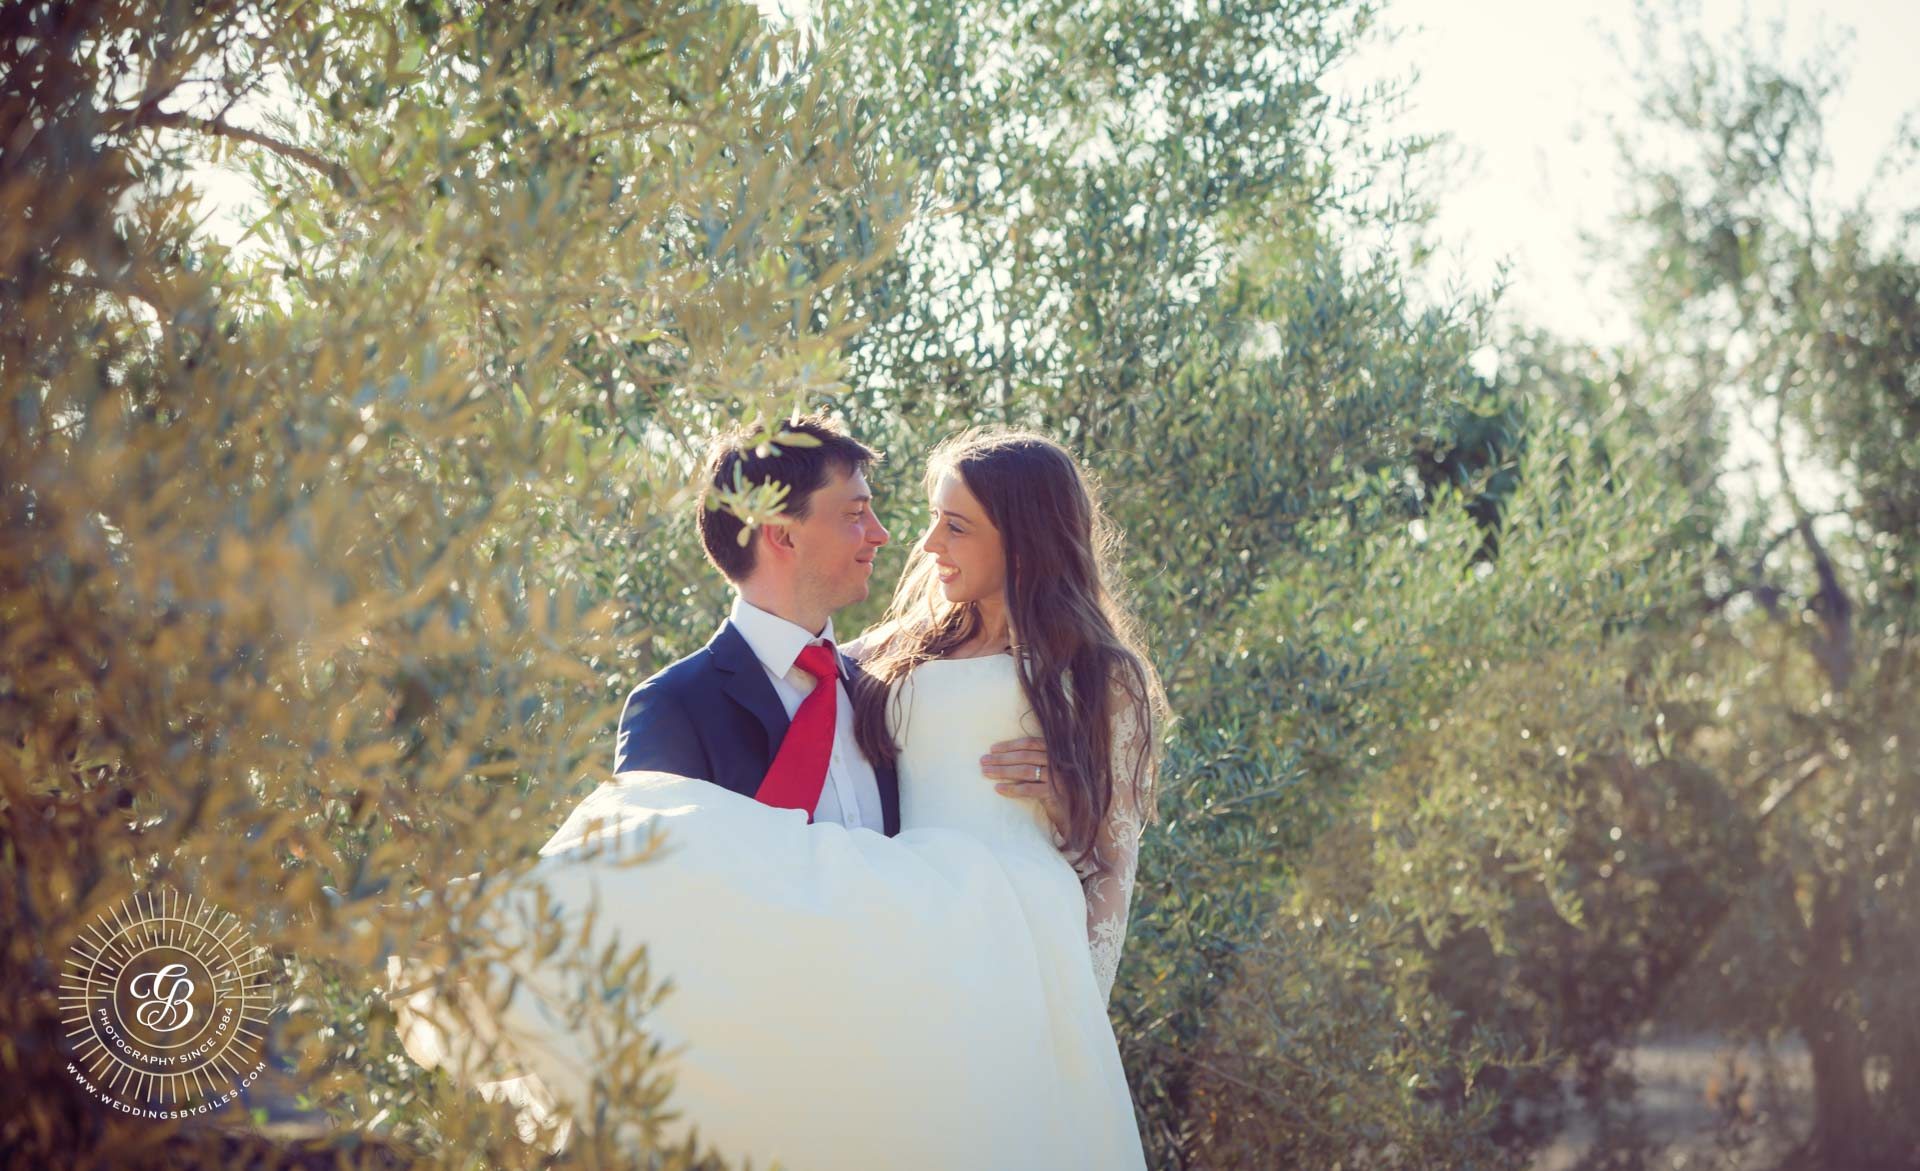 groom carries bride through olive grove in spain